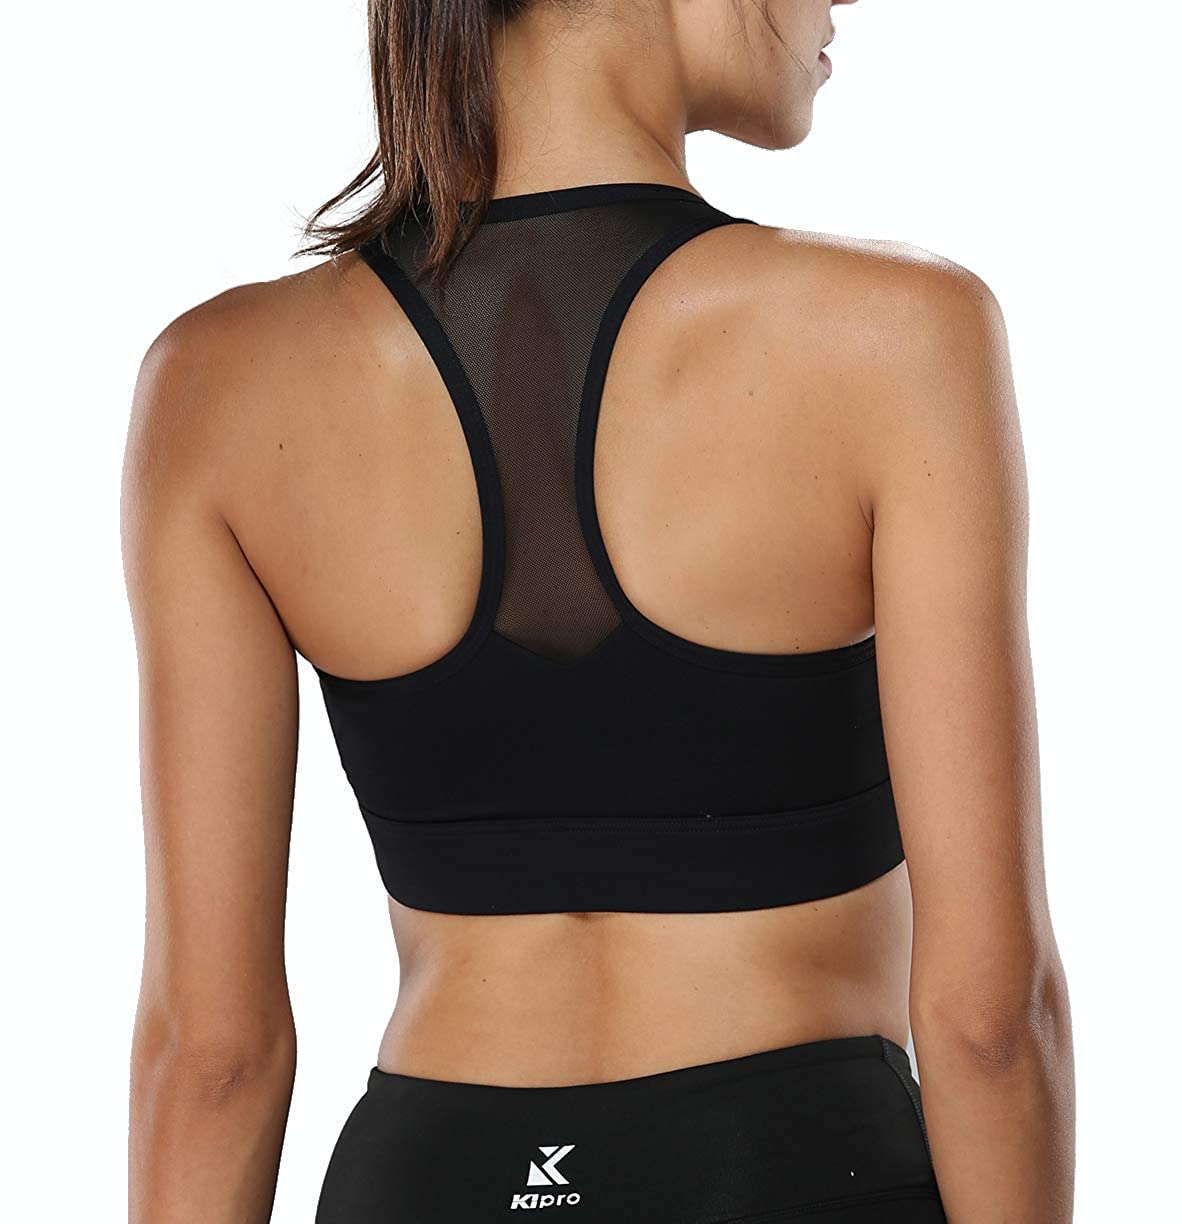 fac75055d2198f FIRM ABS High Impact Stretchy for Exercise Yoga Running Fitness Workout  Black L: Amazon.co.uk: Clothing